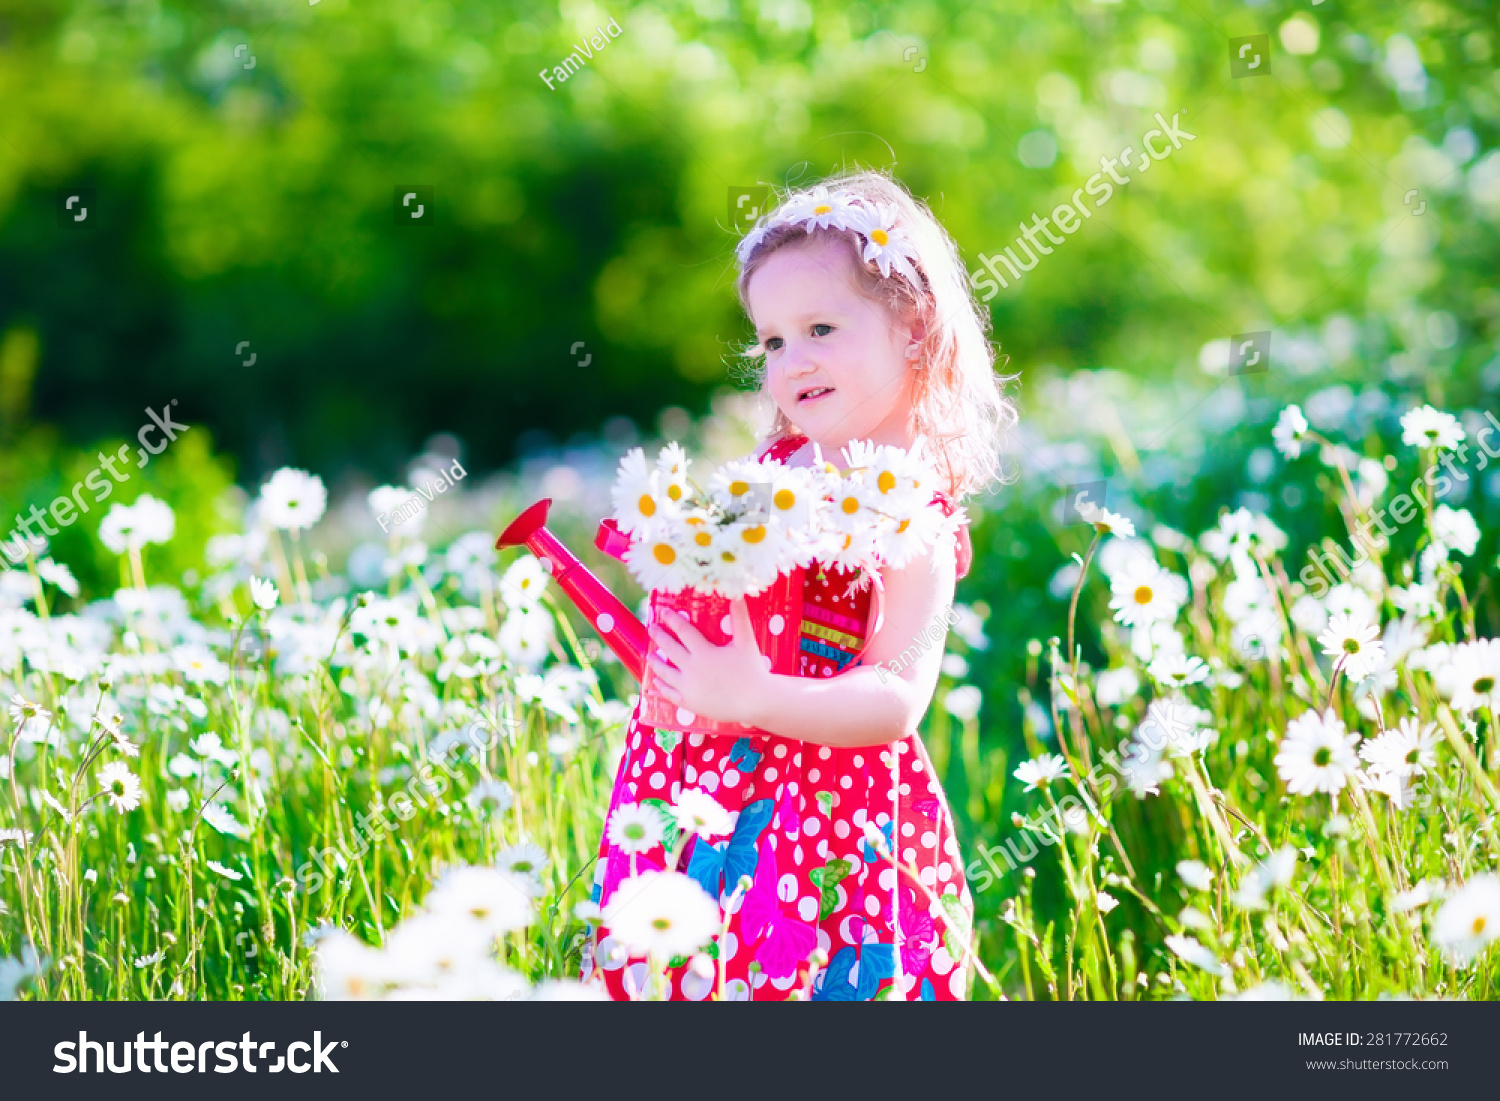 Kid Gardening Little Girl With Water Can In A Daisy